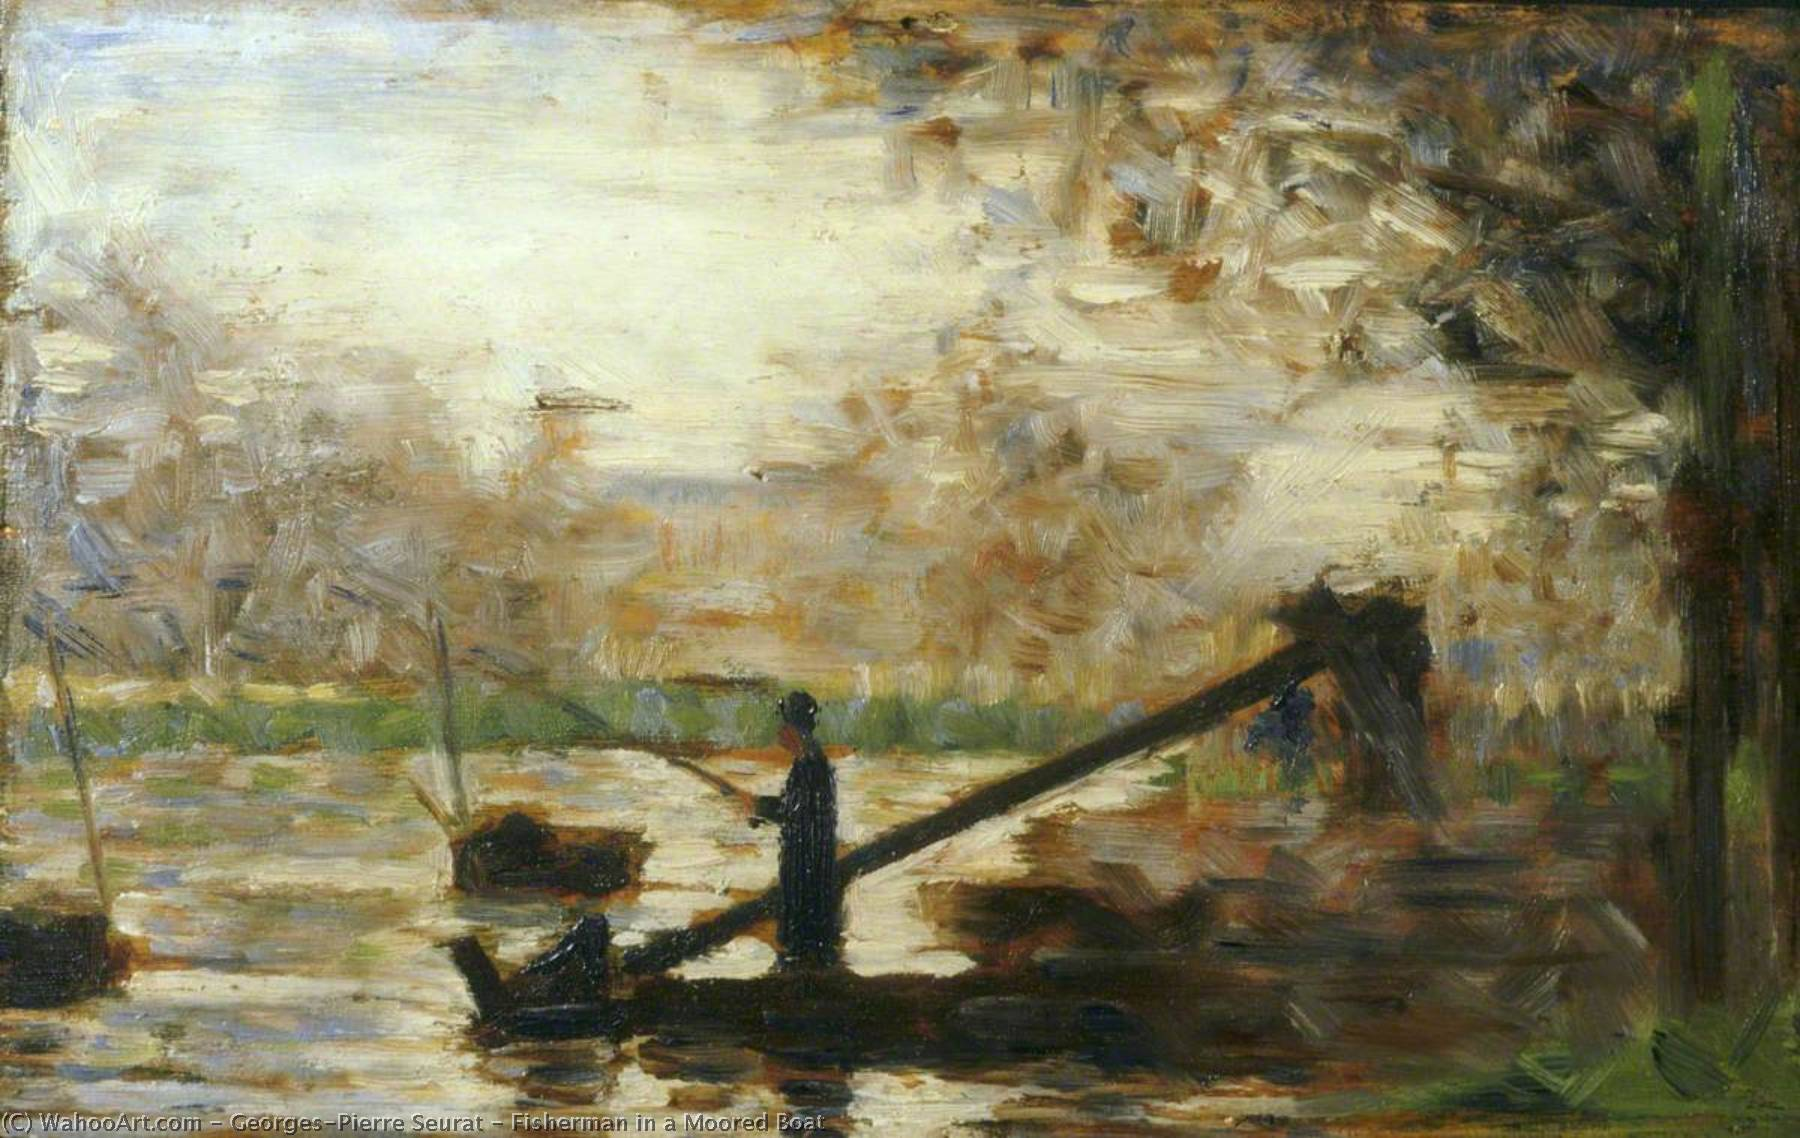 famous painting Fisherman in a Moored Boat of Georges Pierre Seurat